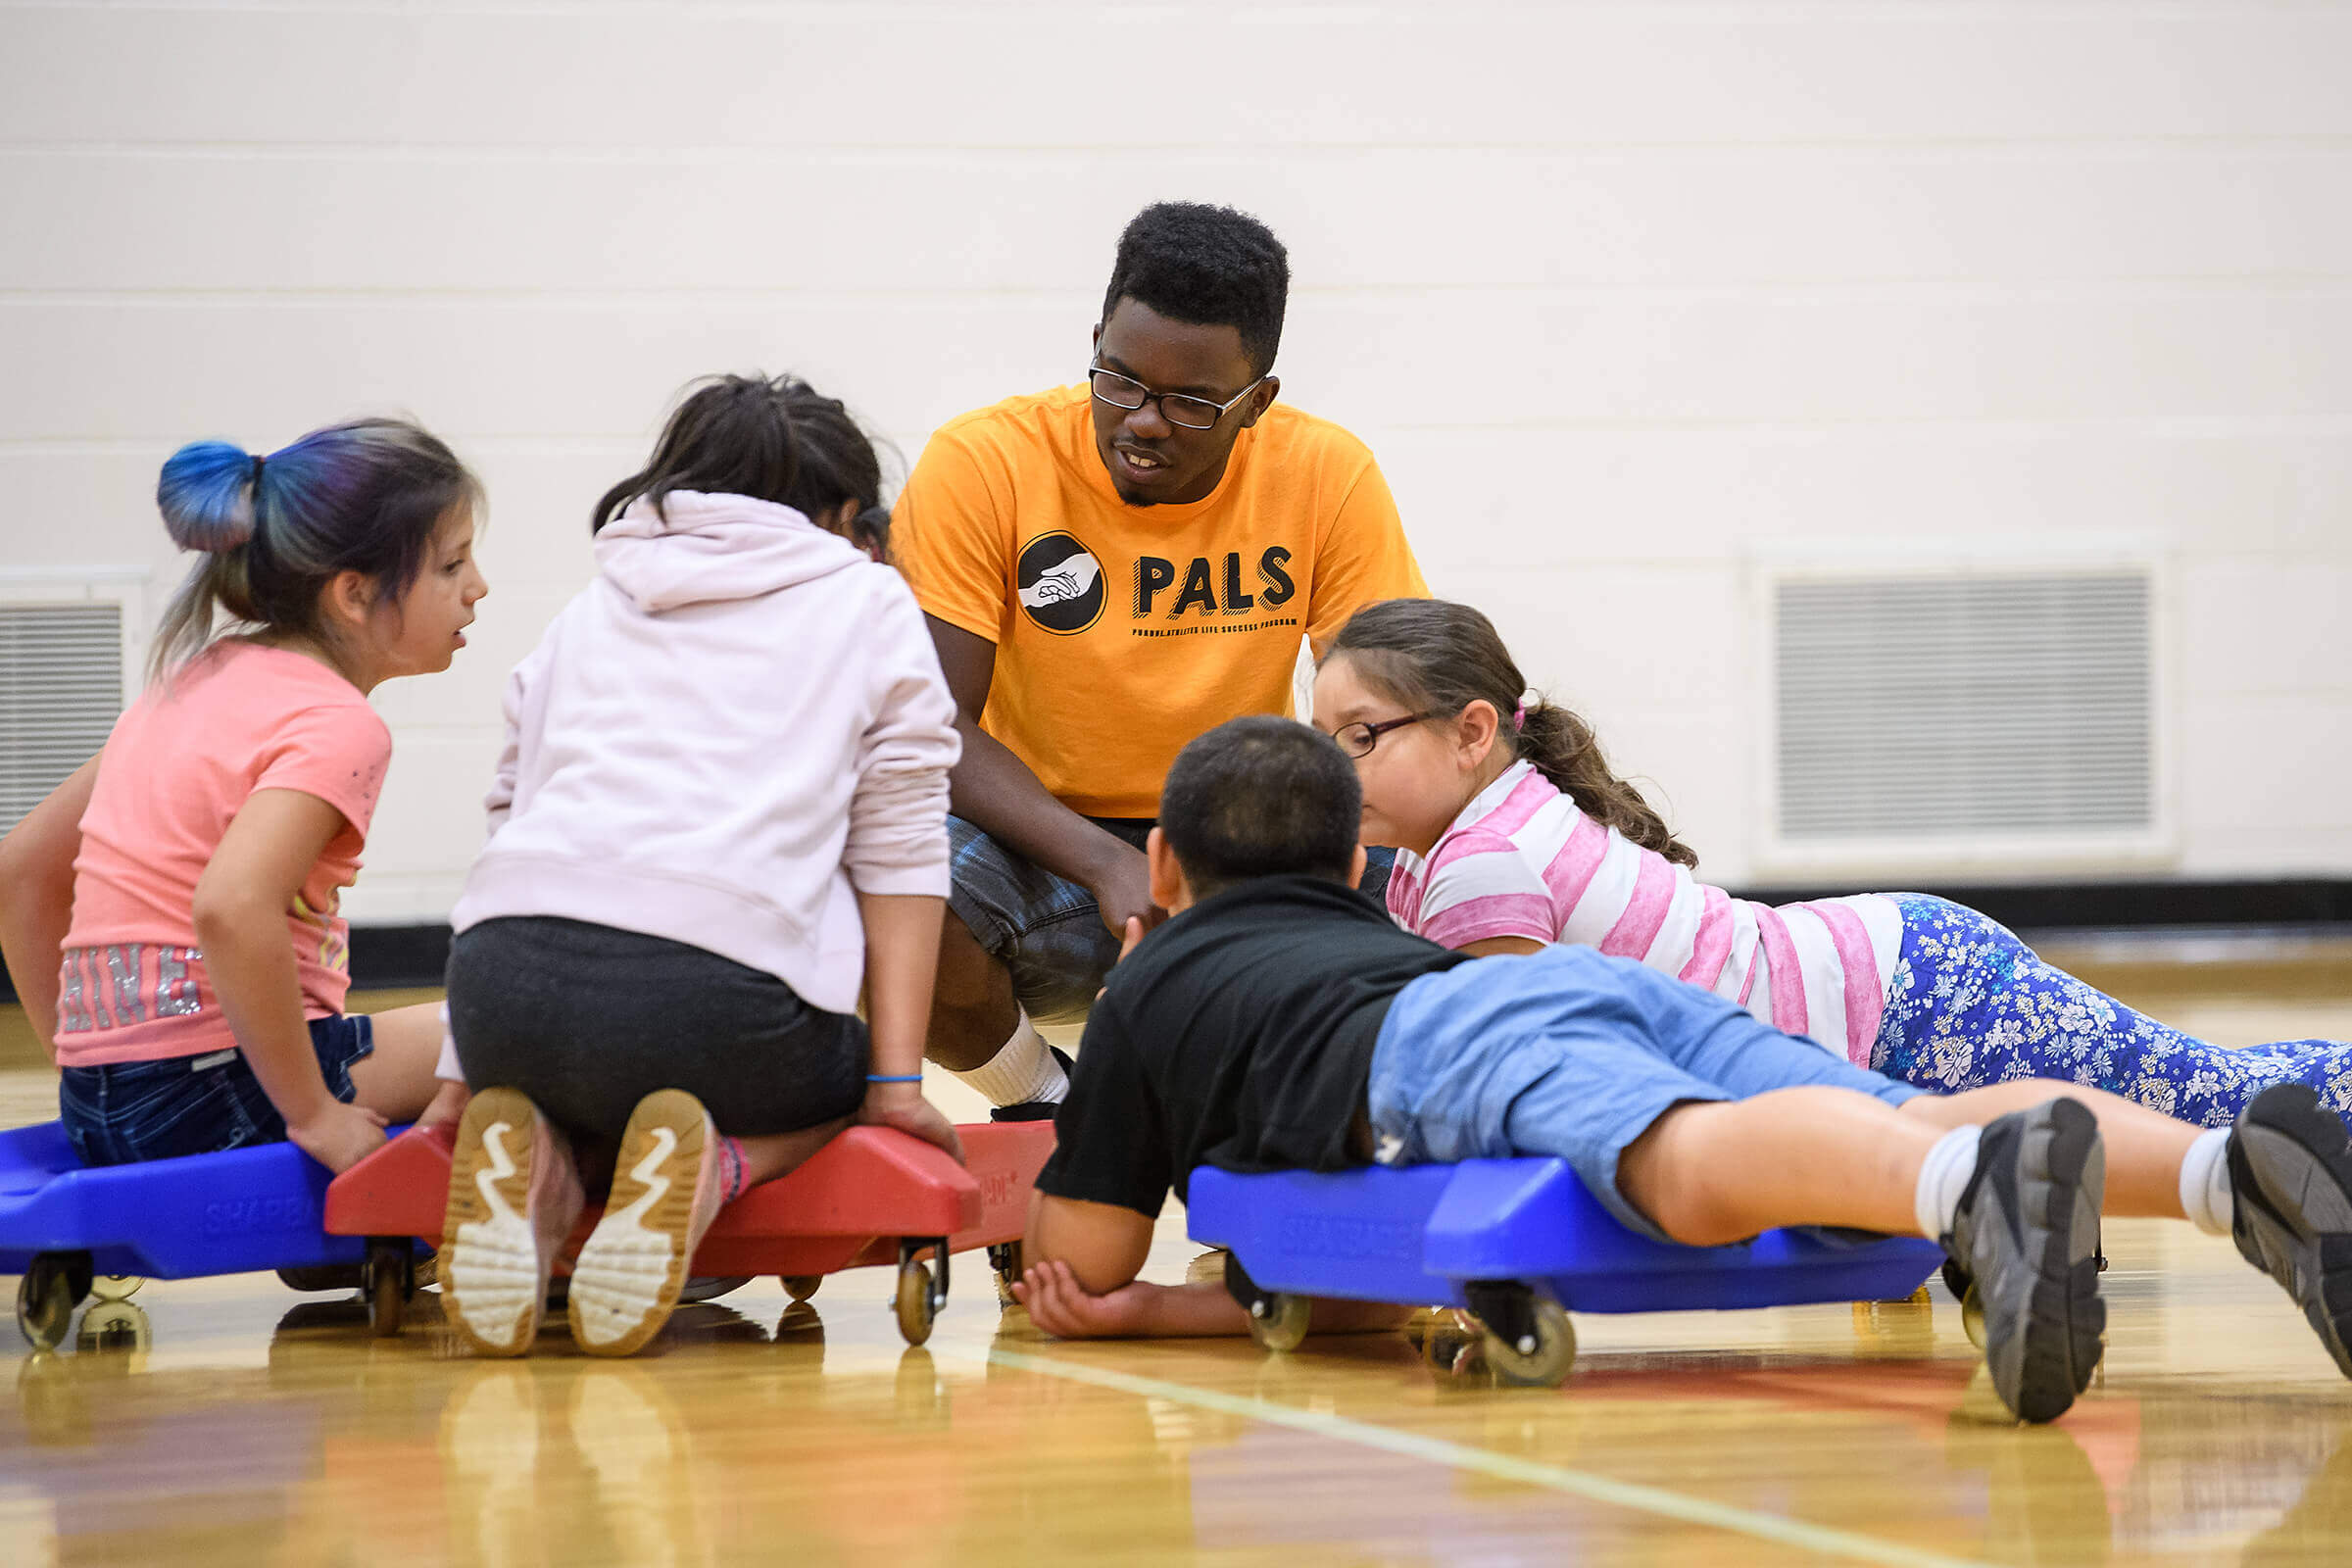 PALS participants learn about upper body strength